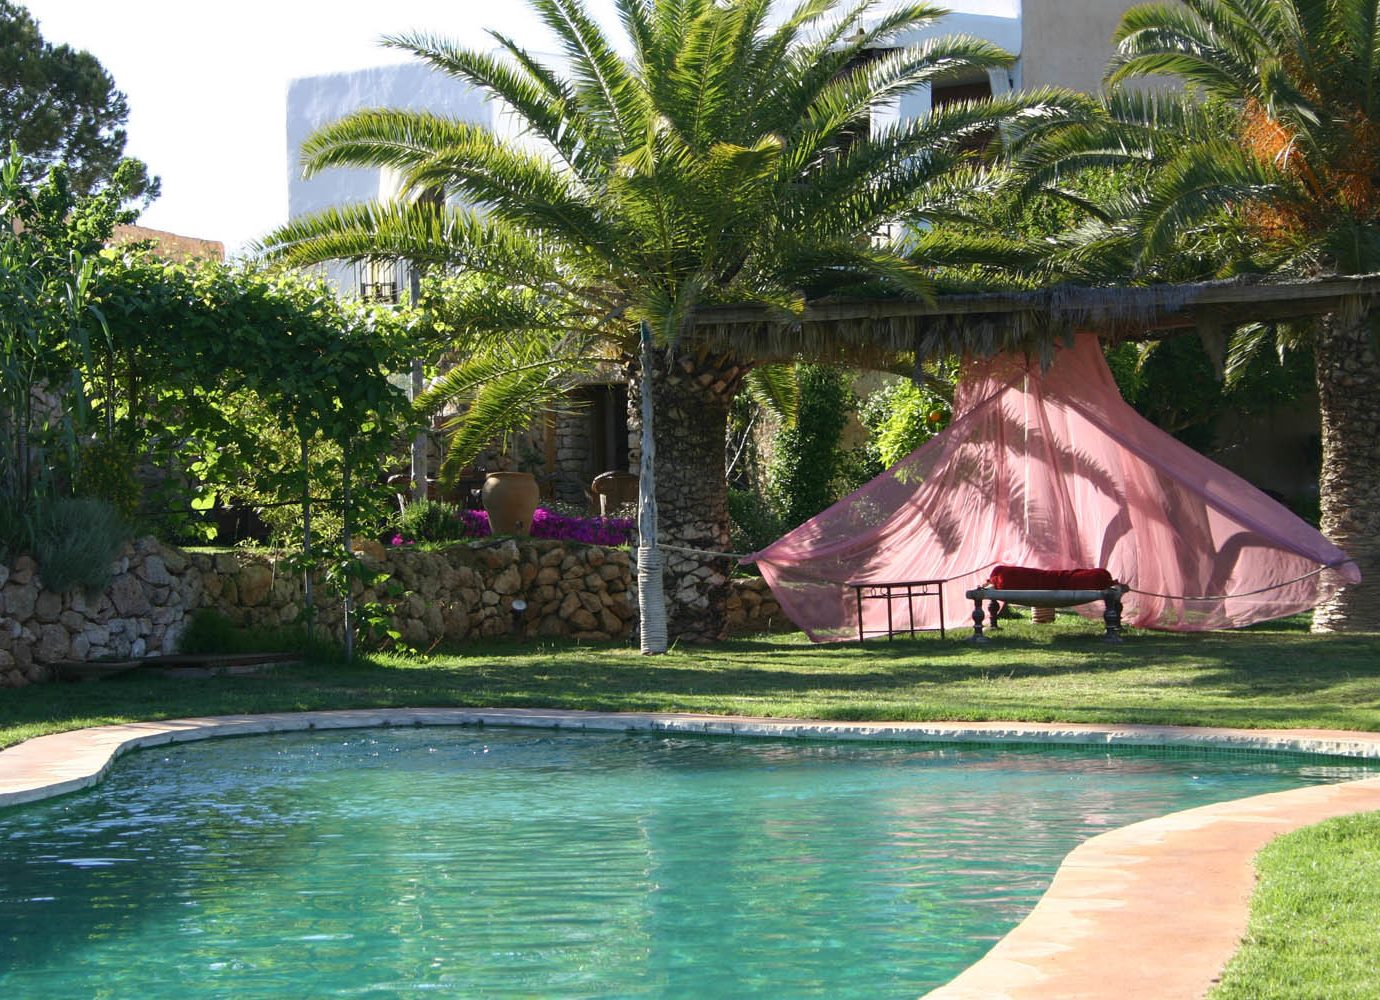 Boutique Hotels Hotels Luxury Travel Meditation Retreats Spa Retreats Trip Ideas Yoga Retreats tree outdoor grass water property Resort swimming pool arecales palm tree estate plant leisure real estate Pool house home Villa hacienda cottage reflection tropics landscape backyard landscaping plantation outdoor structure pond swimming